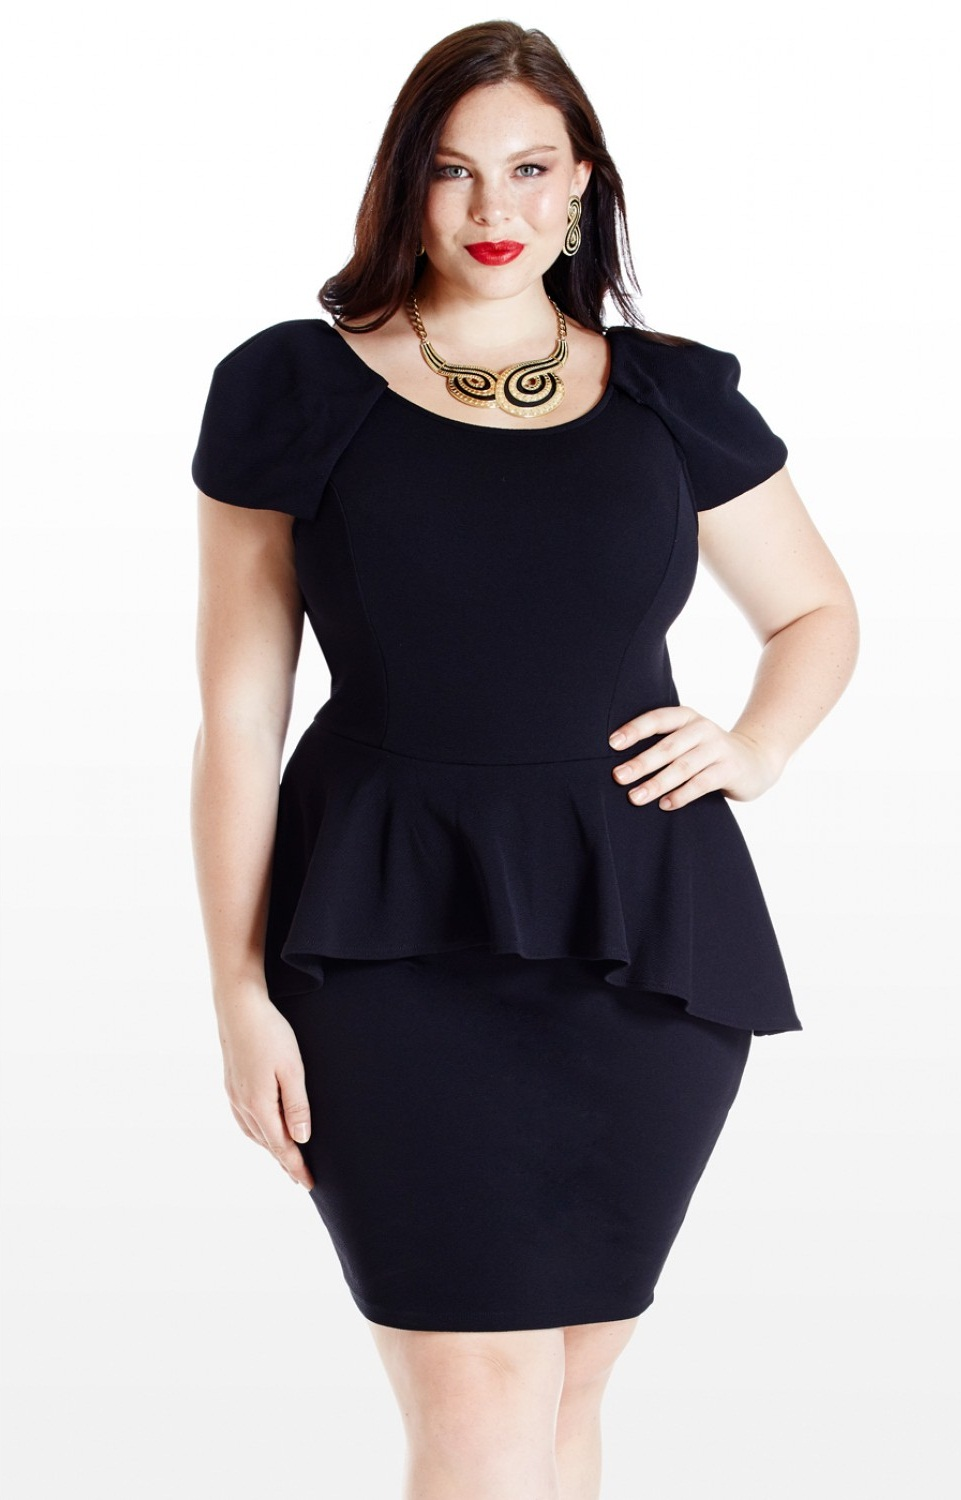 plus size attire zalora